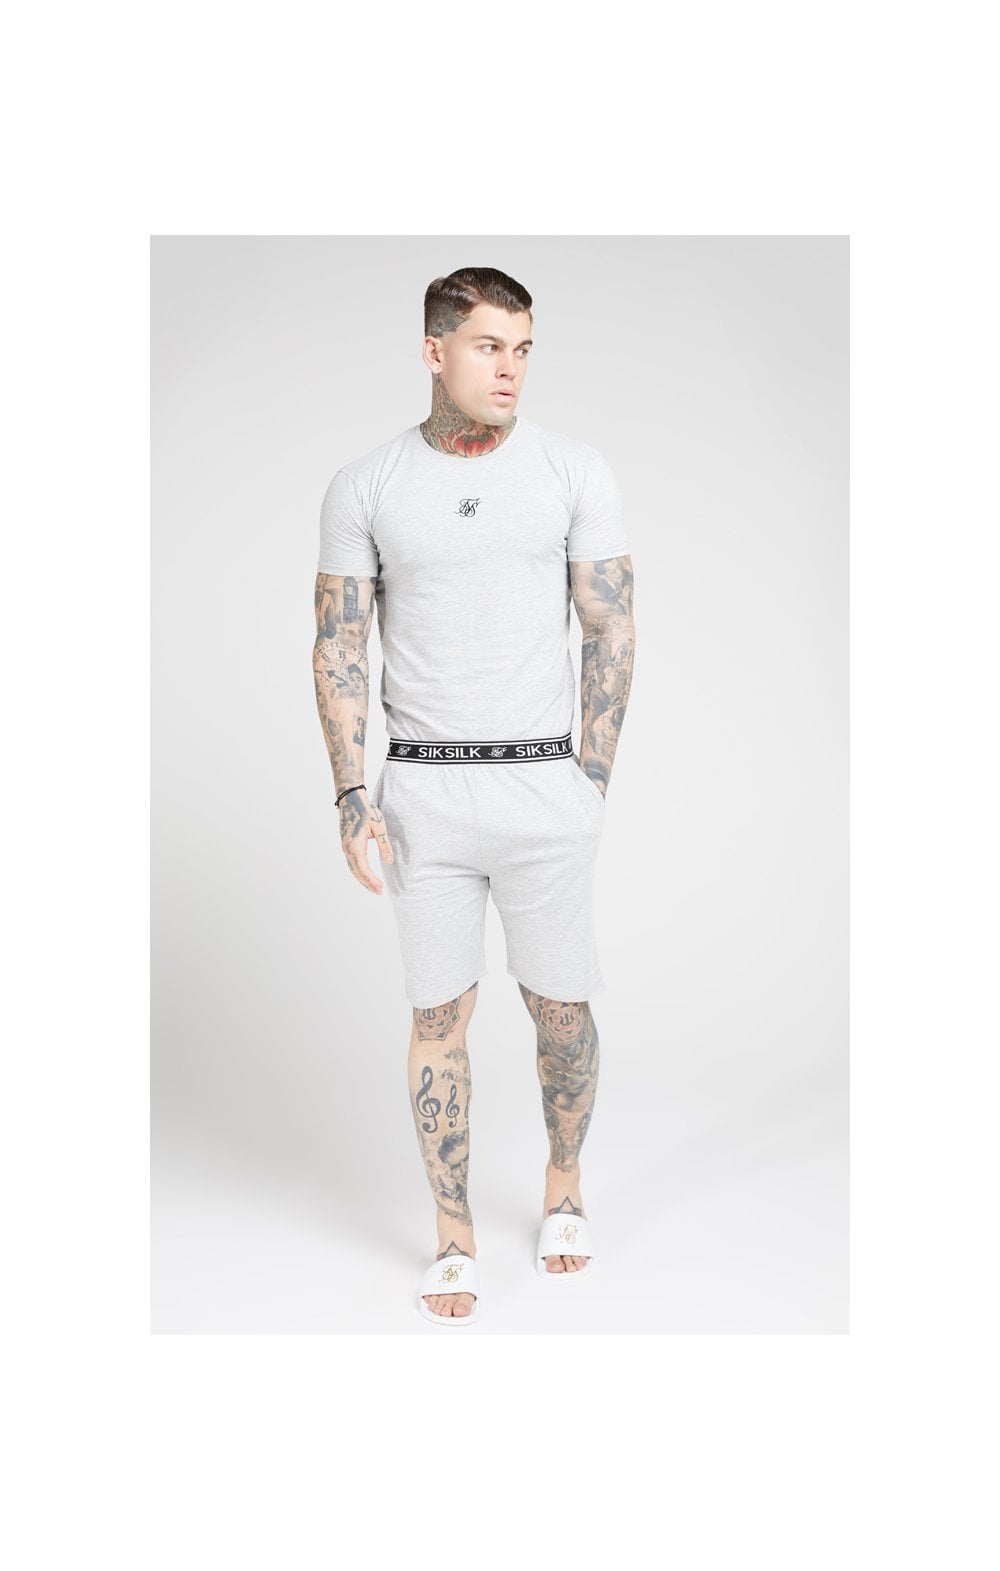 SikSilk Lounge Tee - Black & Grey (2 Pack) - 1 Grey Tee & 1 Black Tee (6)